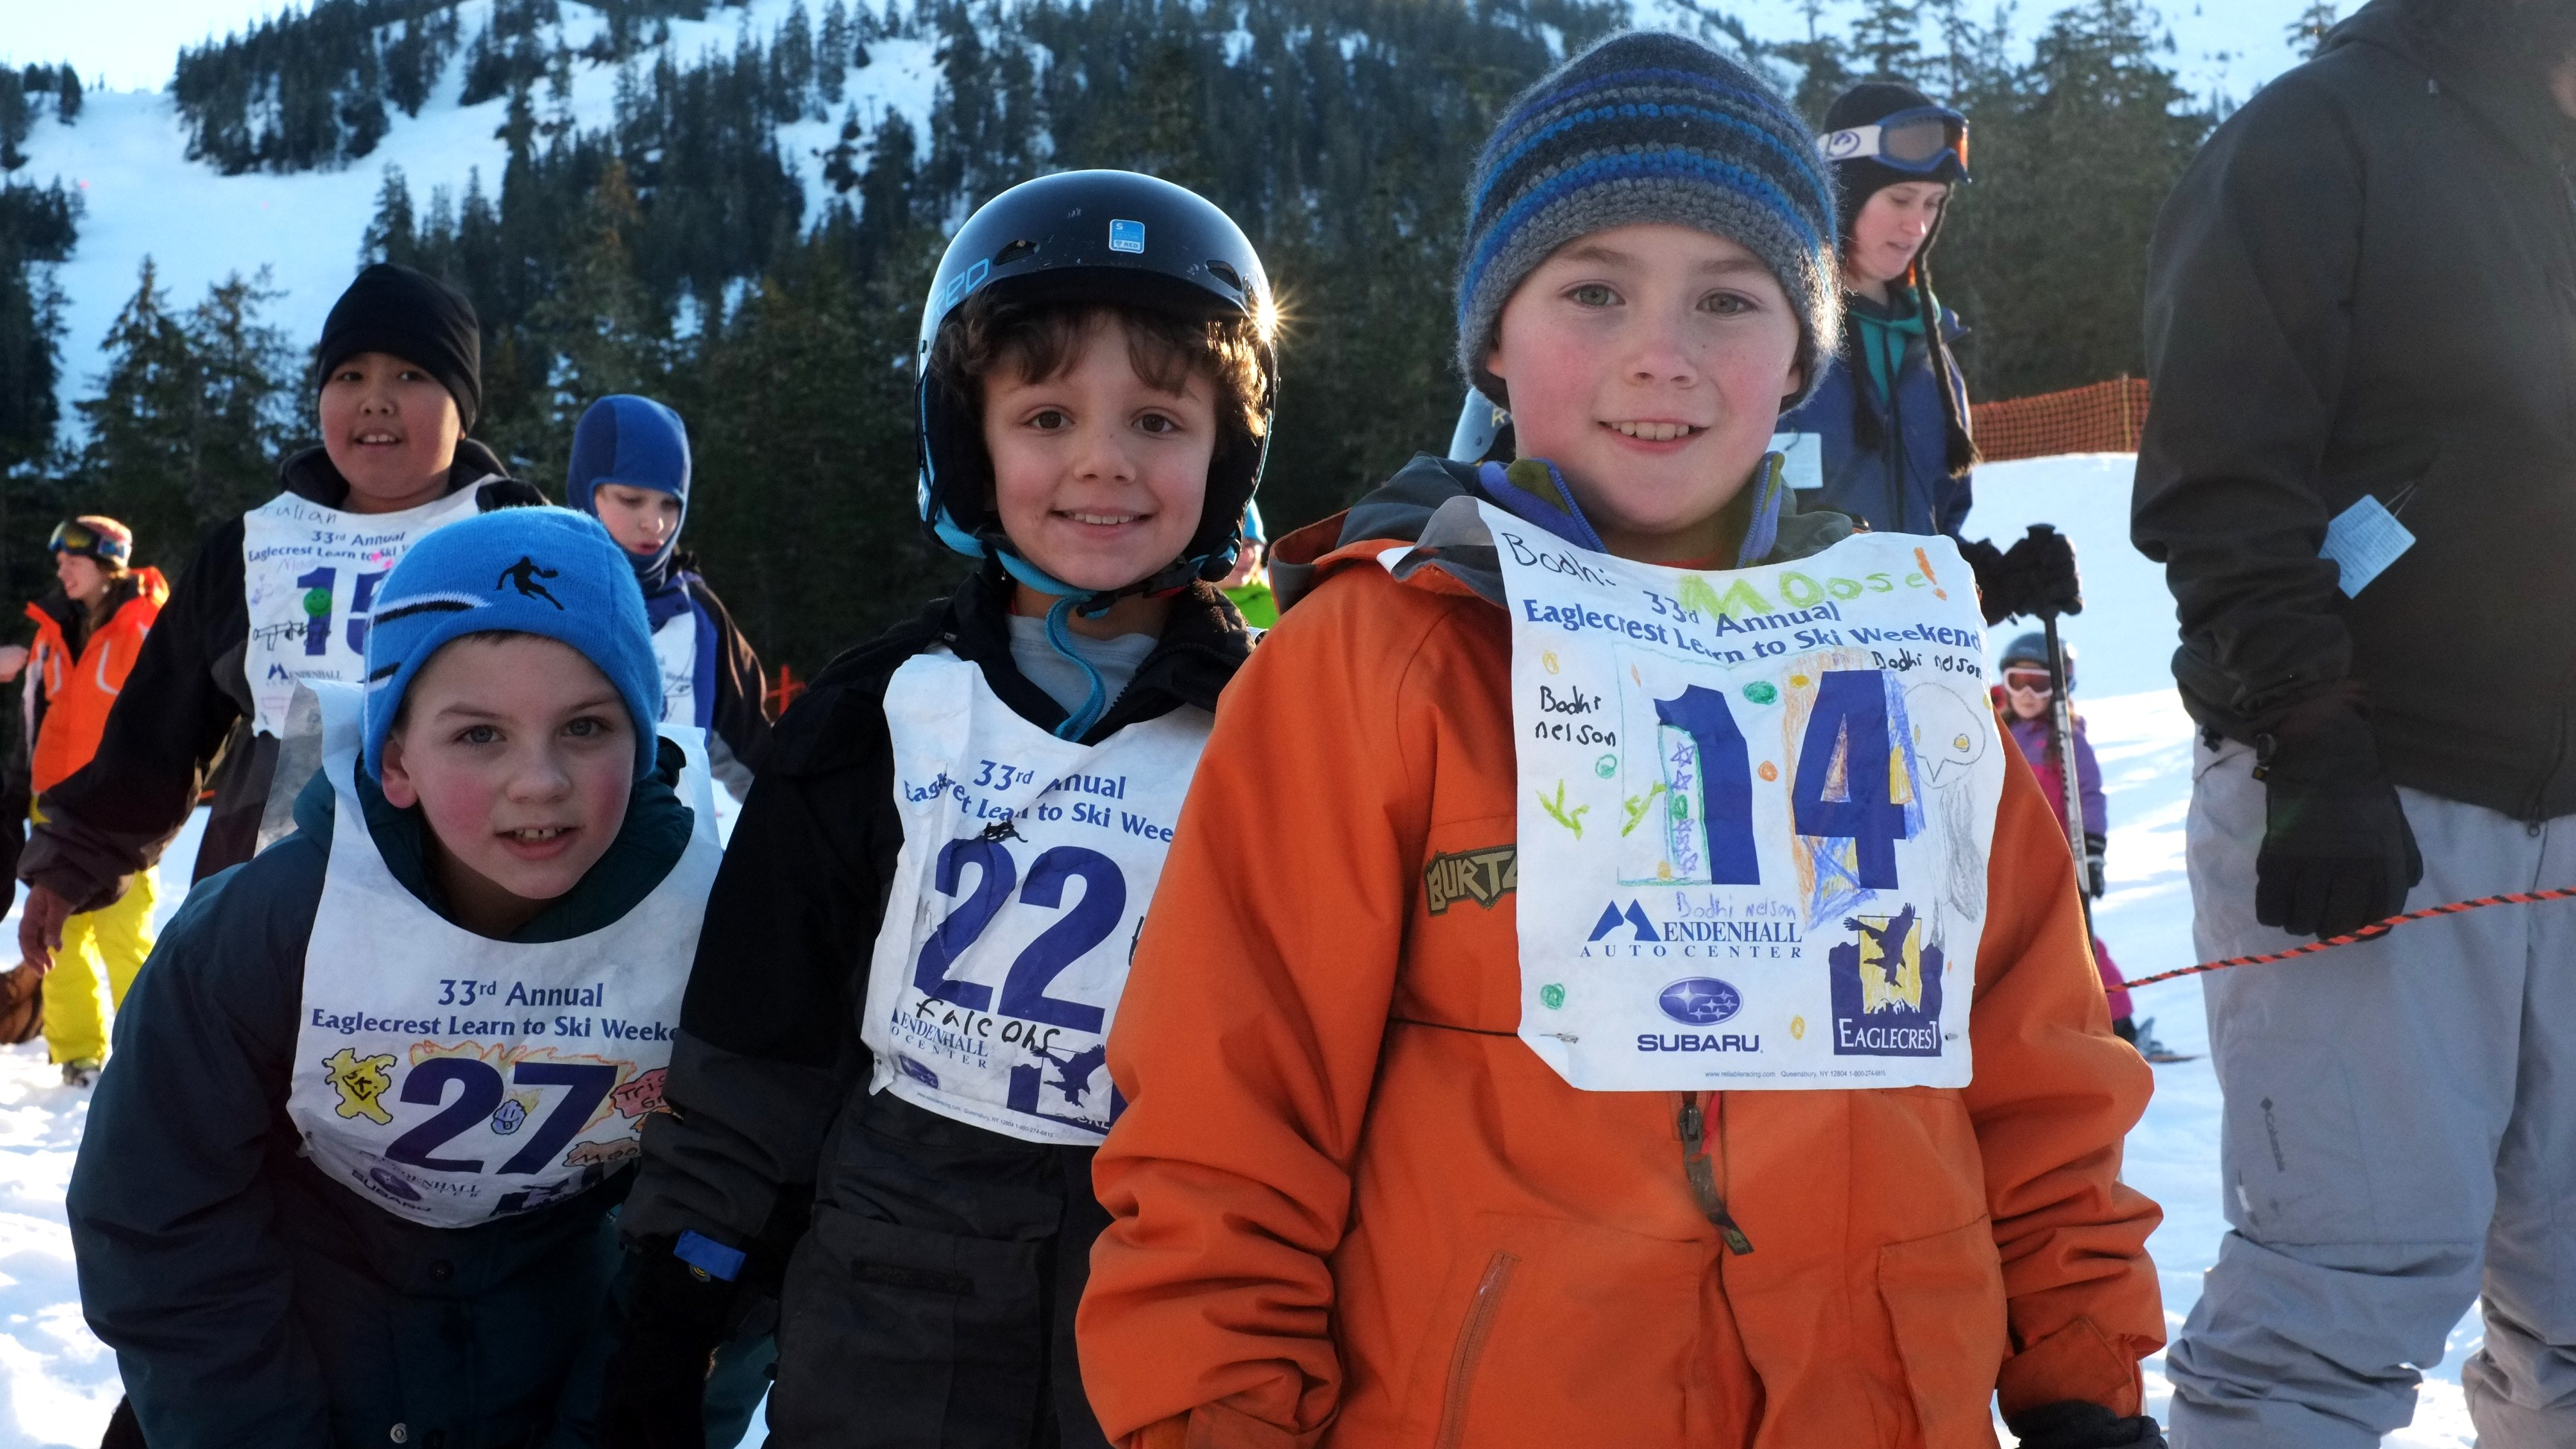 Participants in the 33rd annual Learn to Ski Weekend at Eaglecrest.